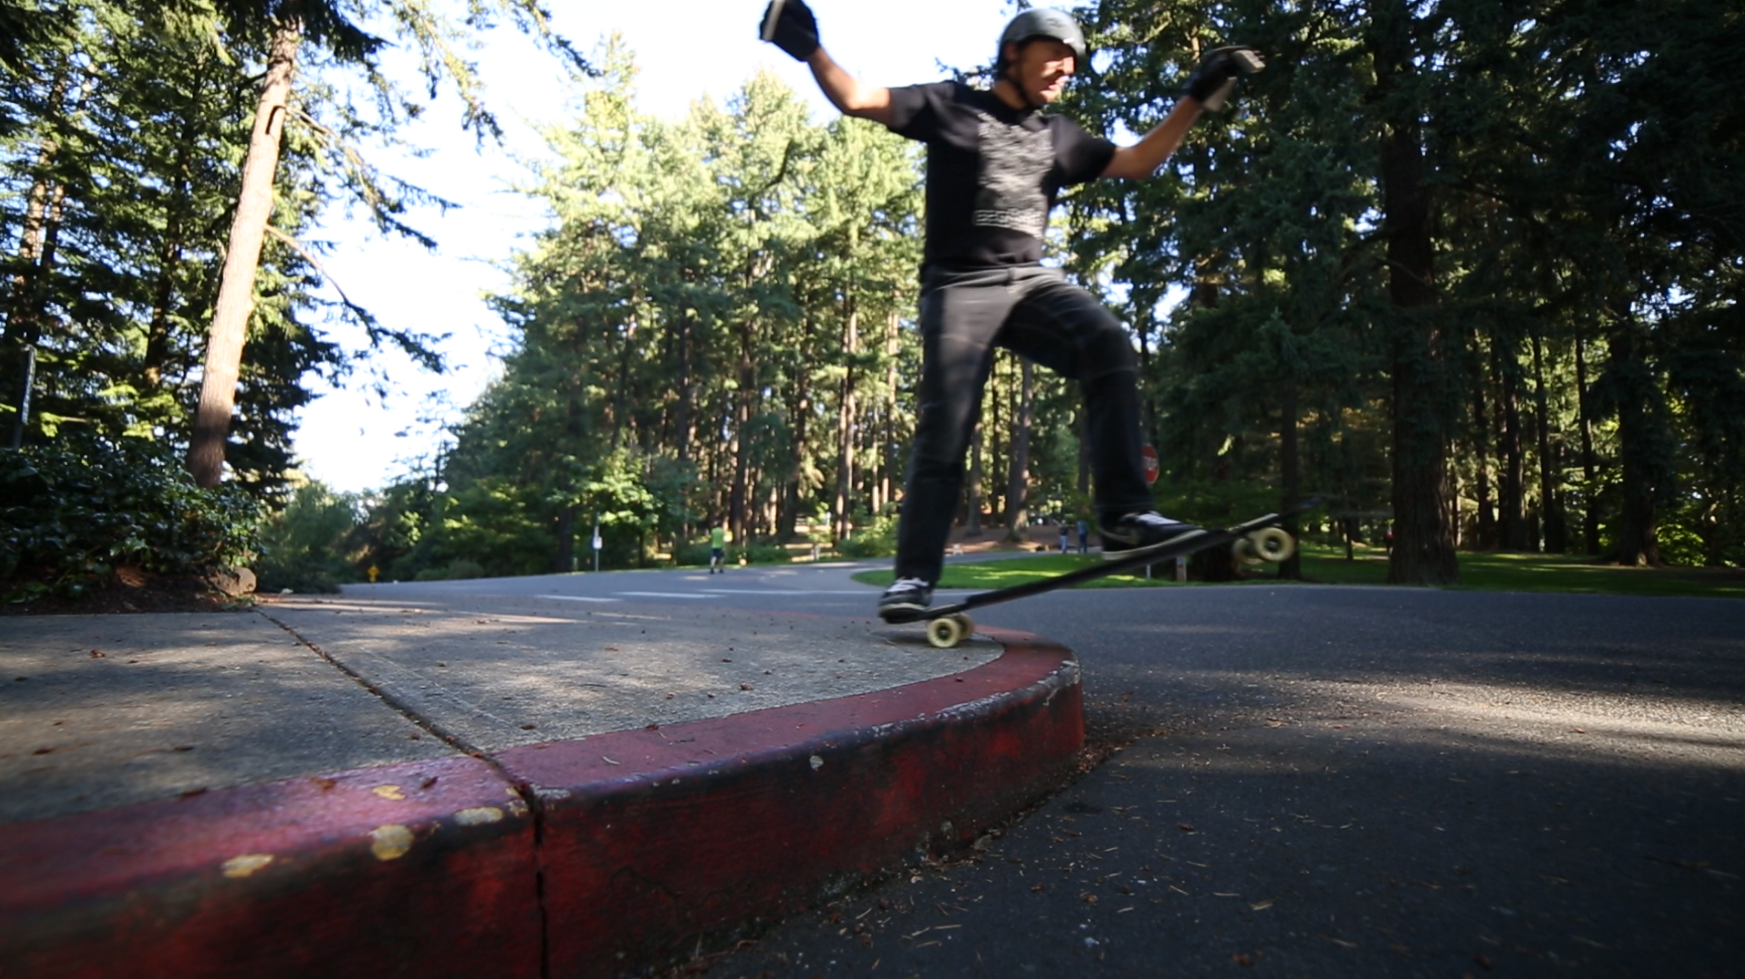 Riding off curbs with the kictail makes it more fun to drop down (and doesn't scrap the bottom of your board).